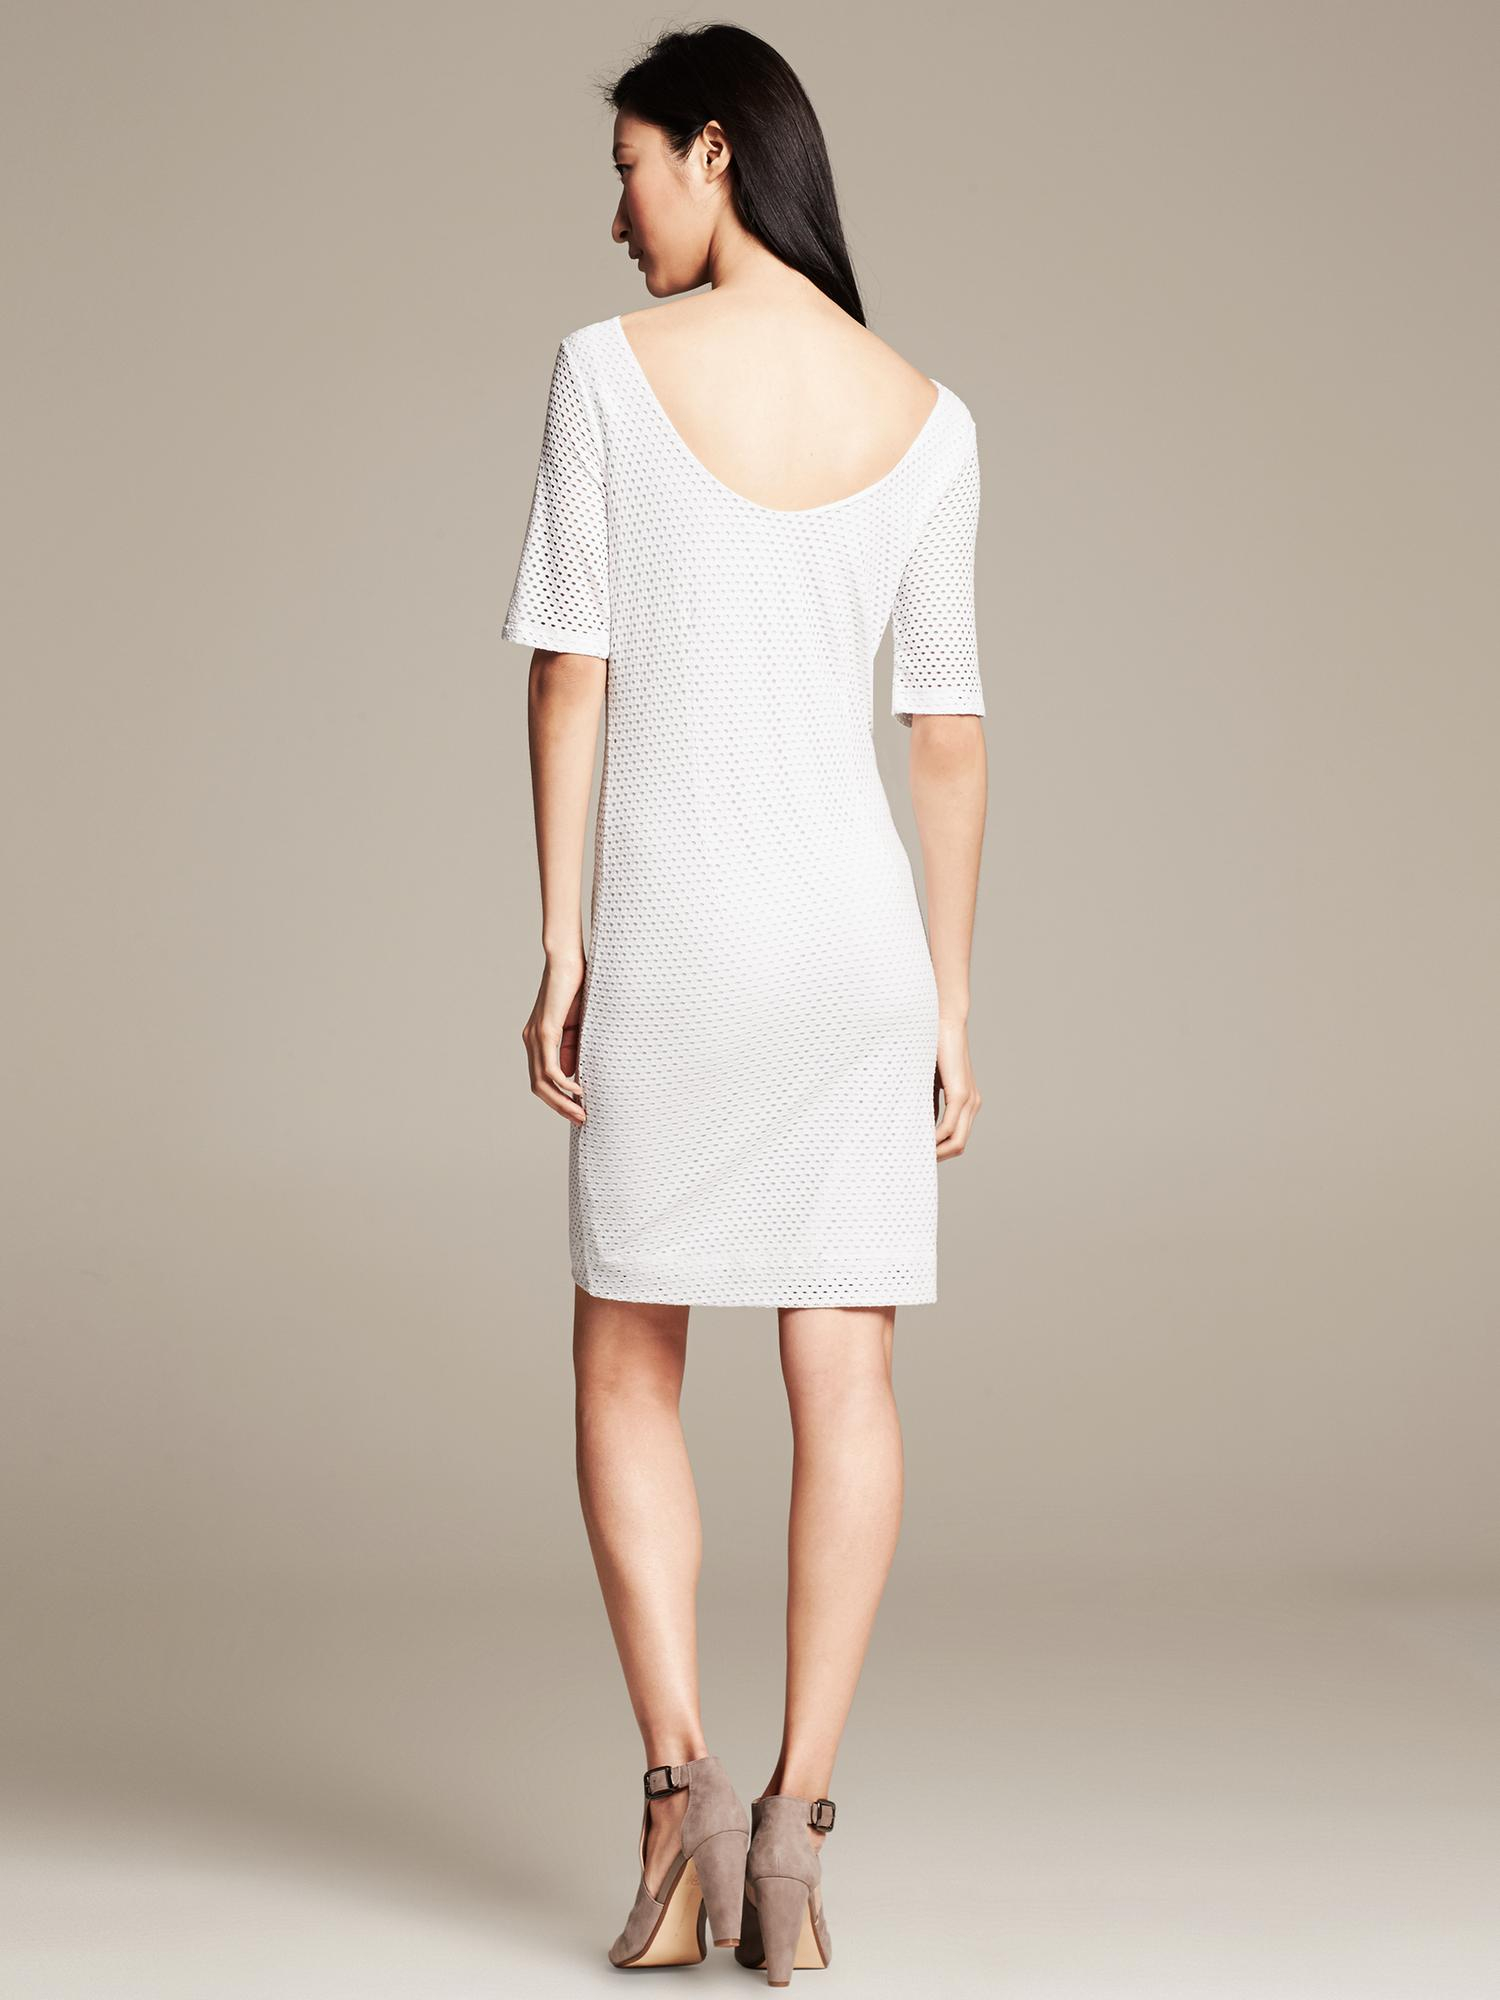 Banana Republic Perforated Dress In White Lyst